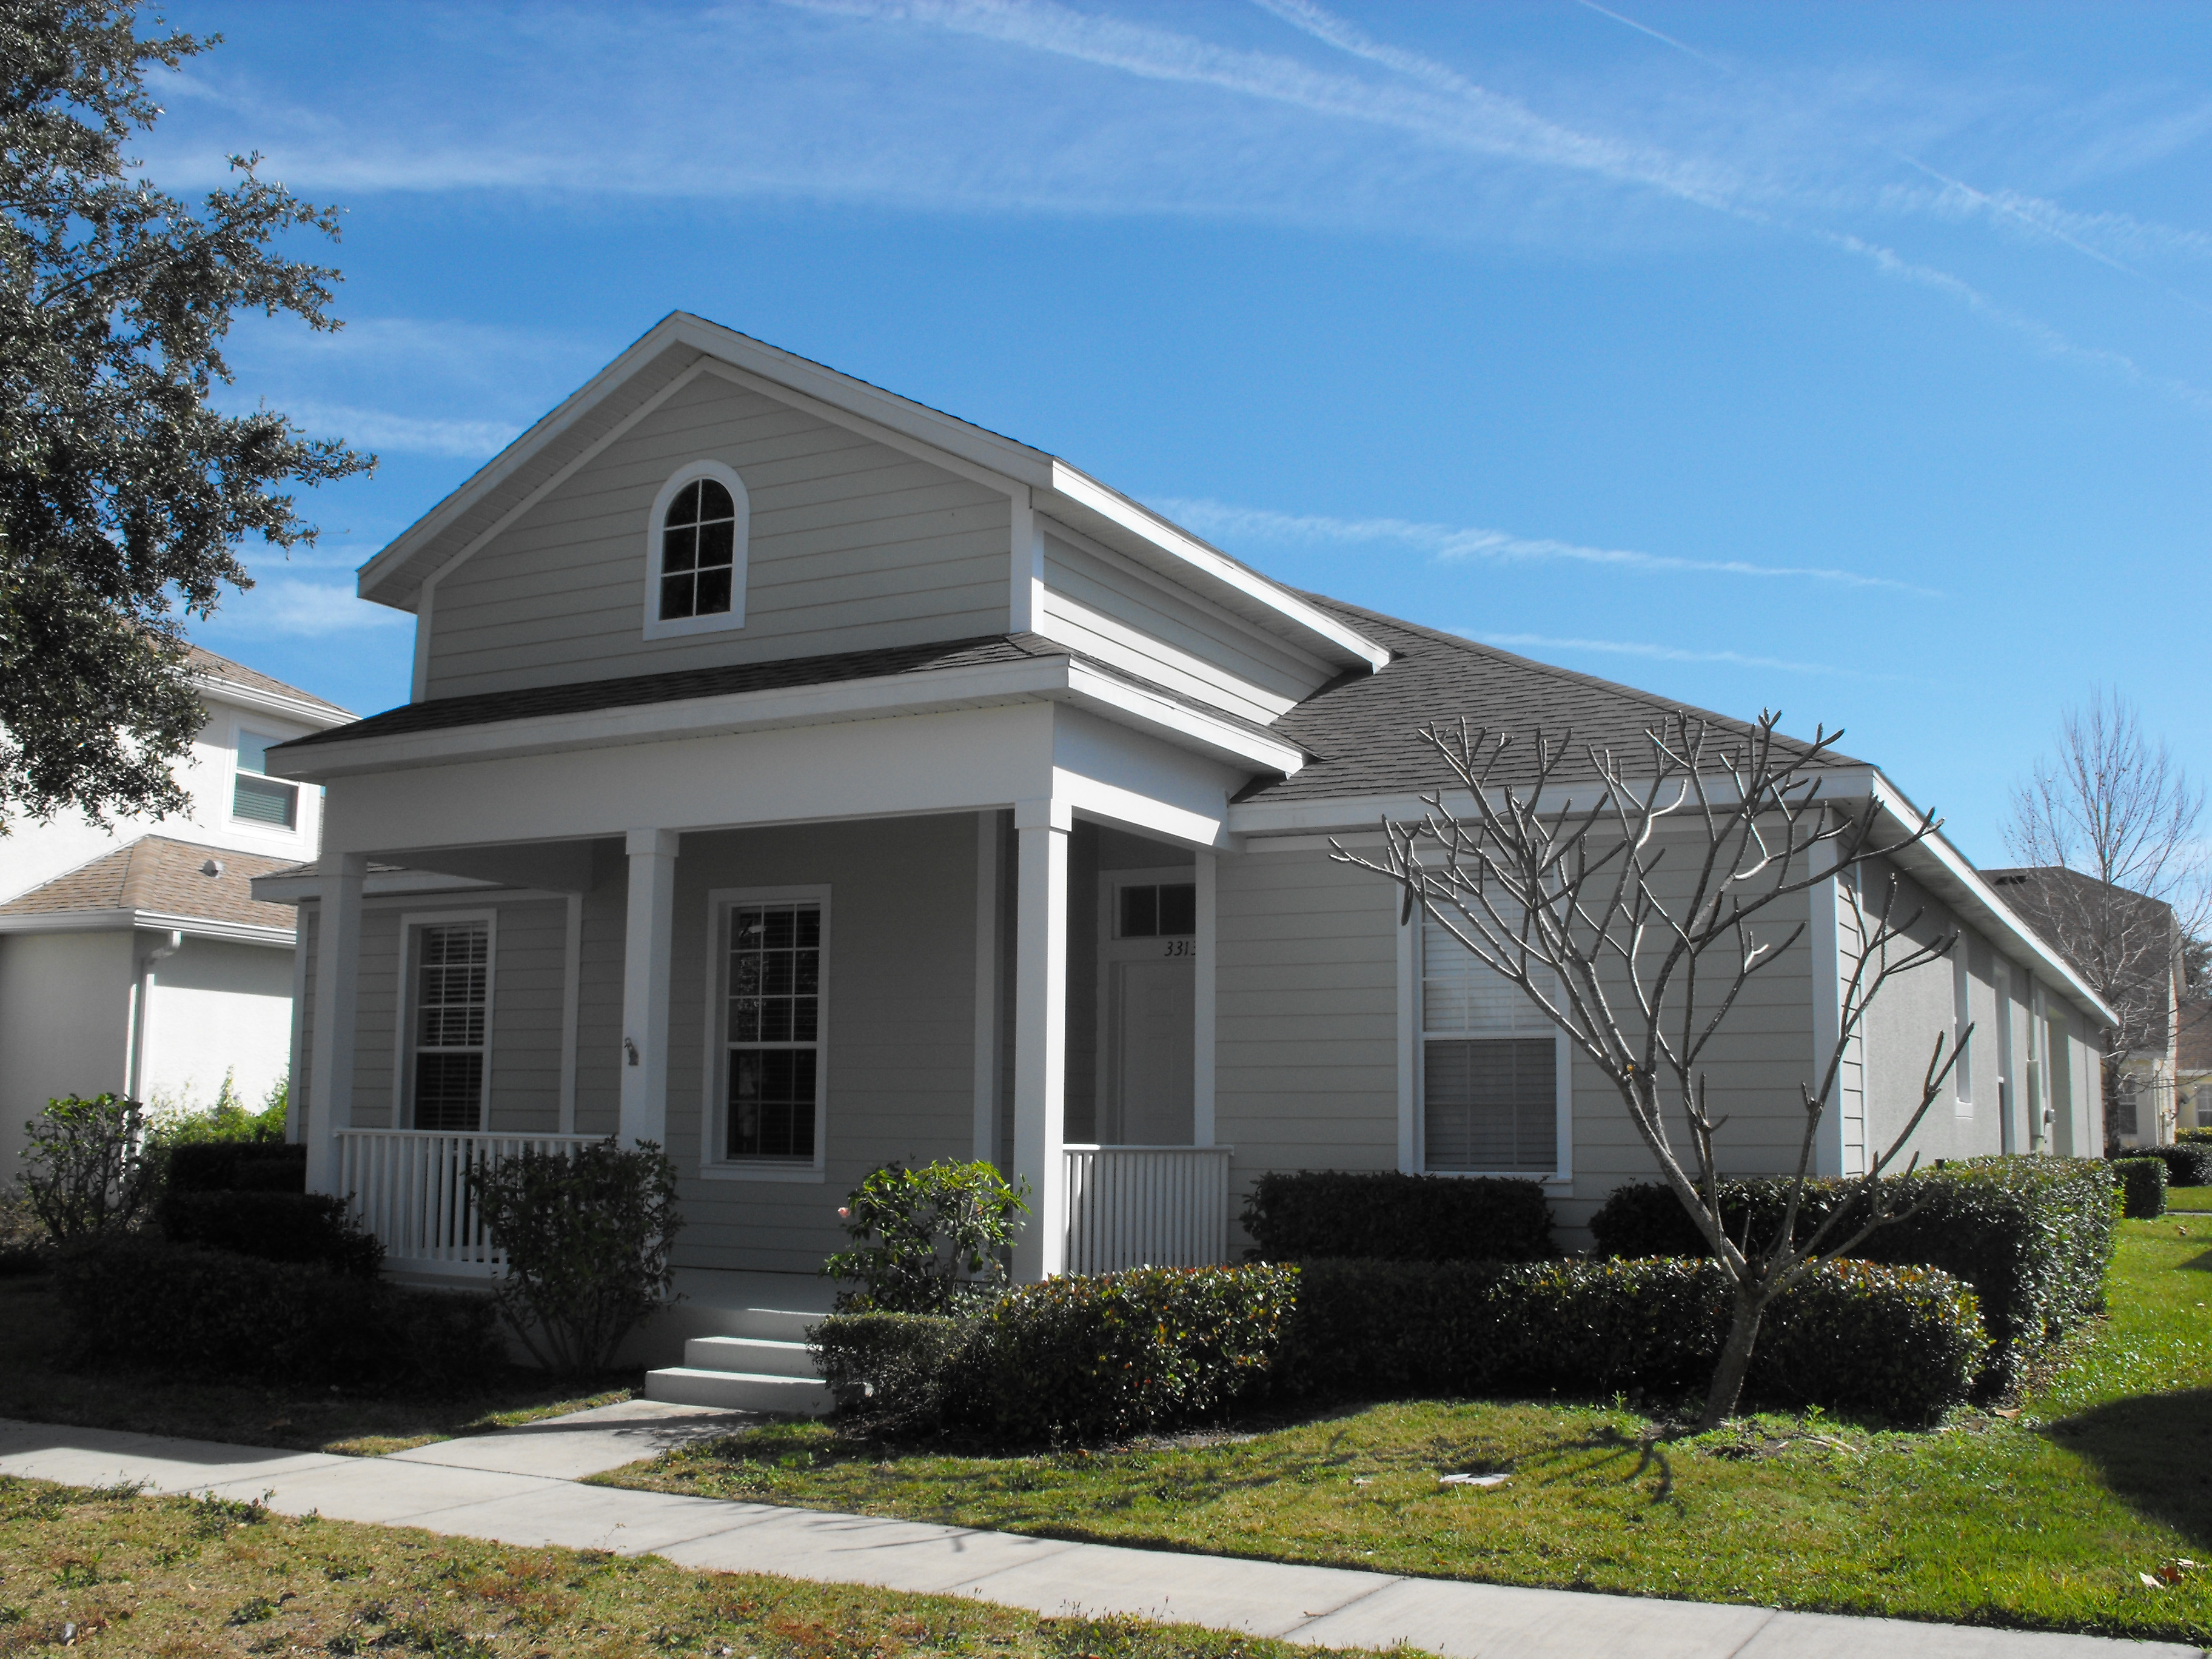 This 4/3 home on Harmony is about to become 1 couple's first dream home